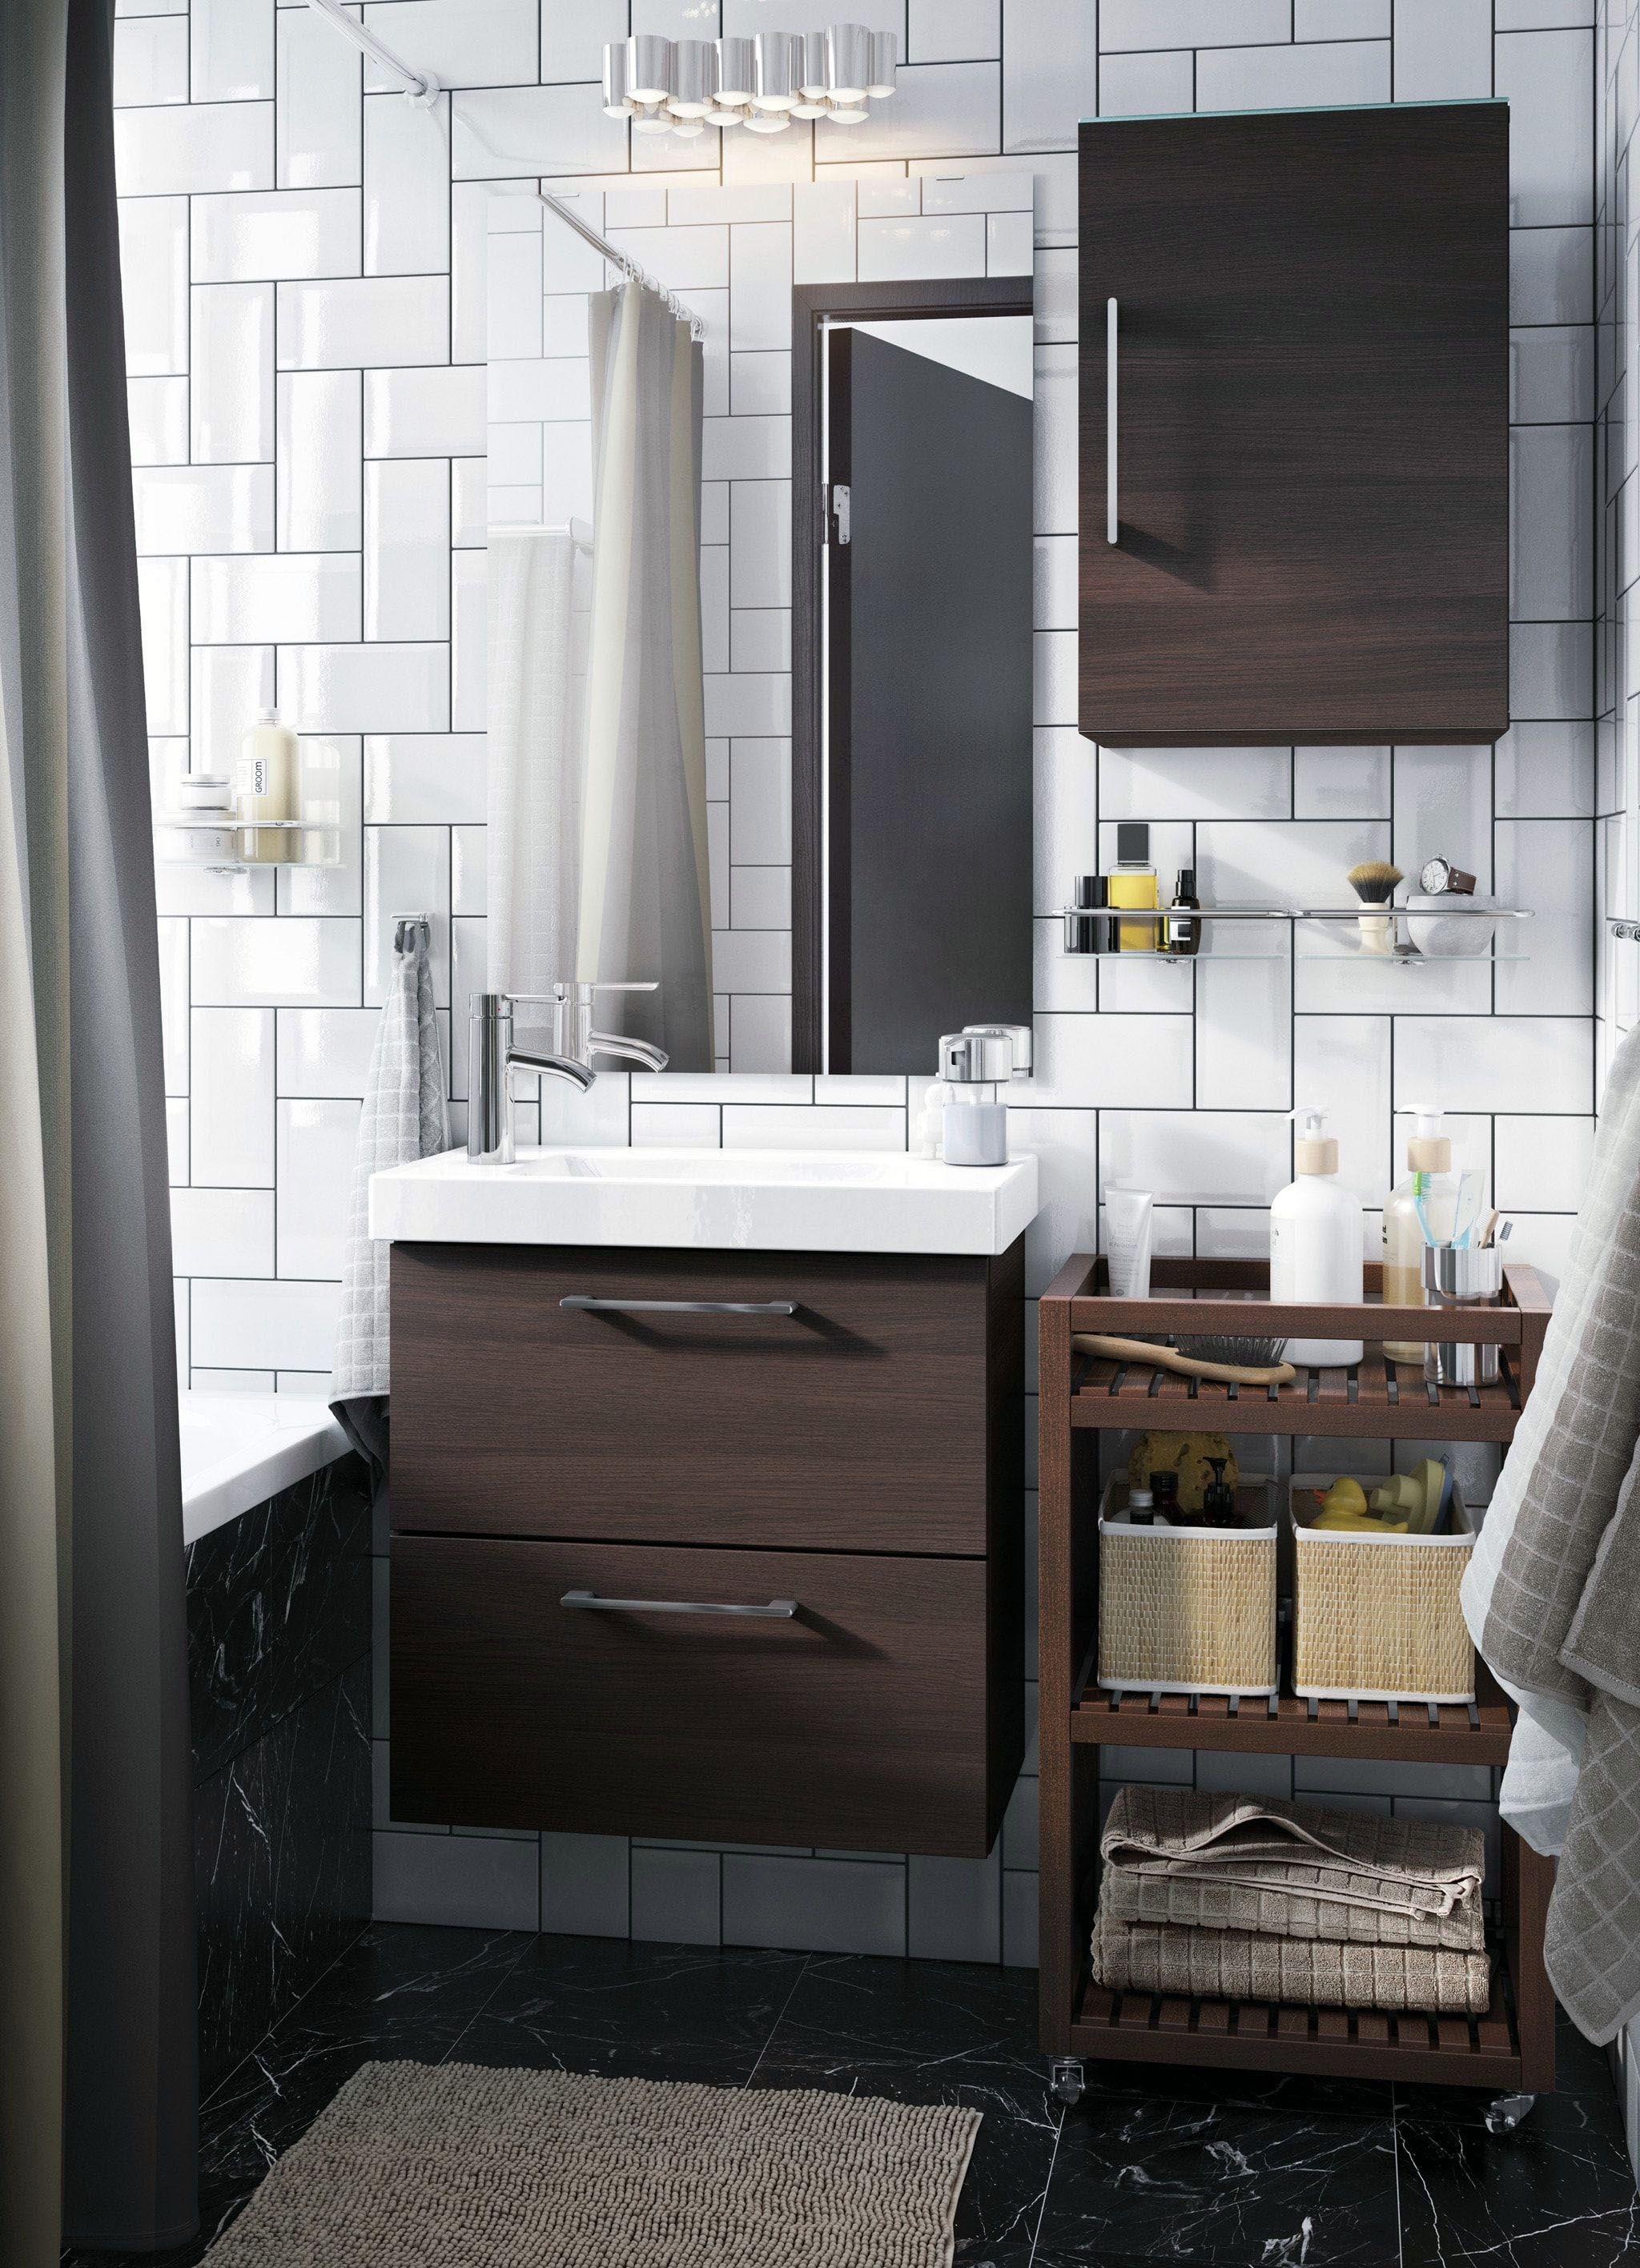 Discover Under Bathroom Cabinet Storage Ideas Only In Miral Iva Design Ikea Bathroom Small White Bathrooms Bathroom Cabinets Ikea